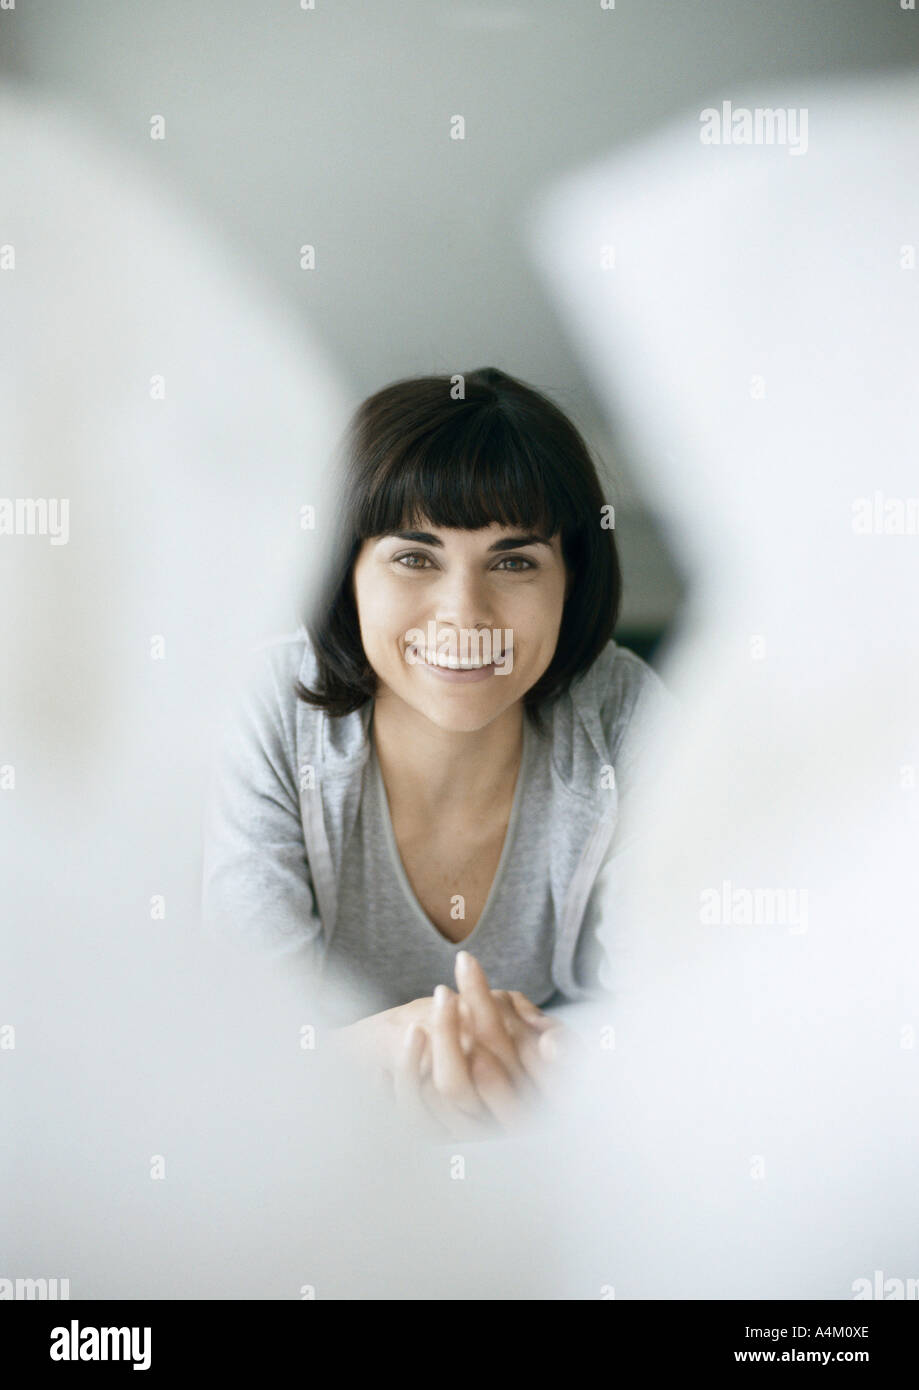 Woman, portrait - Stock Image